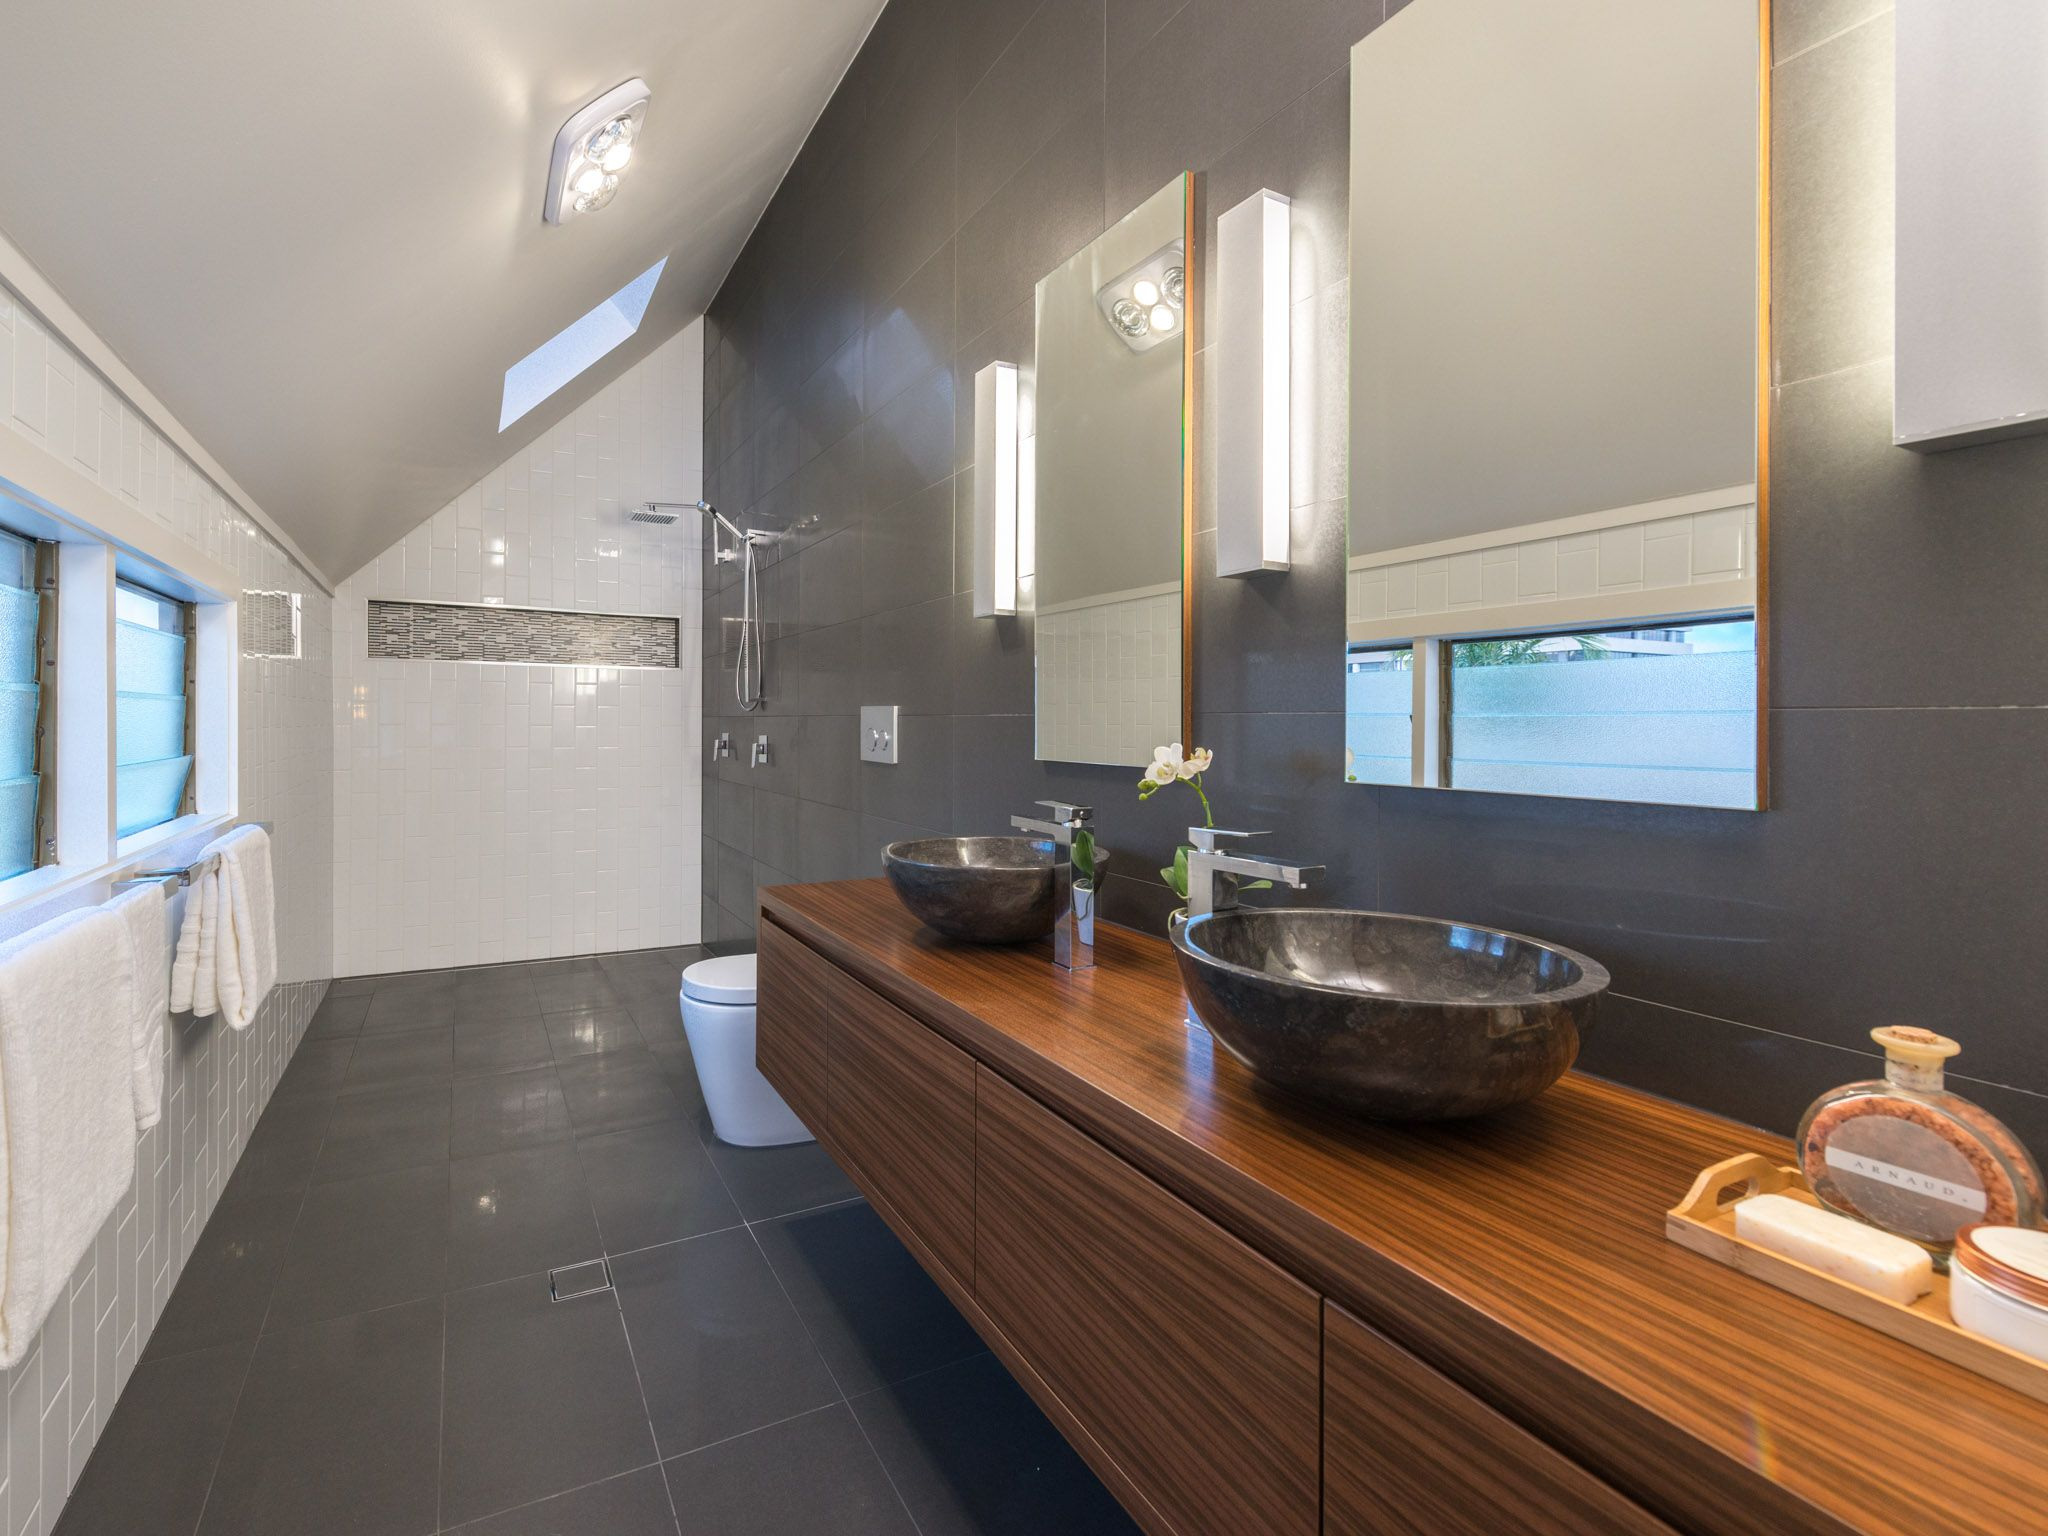 Beautiful Vanity In NAV Enviroven Pecano Veneer By Style Kitchens By Design  QLD   Www.